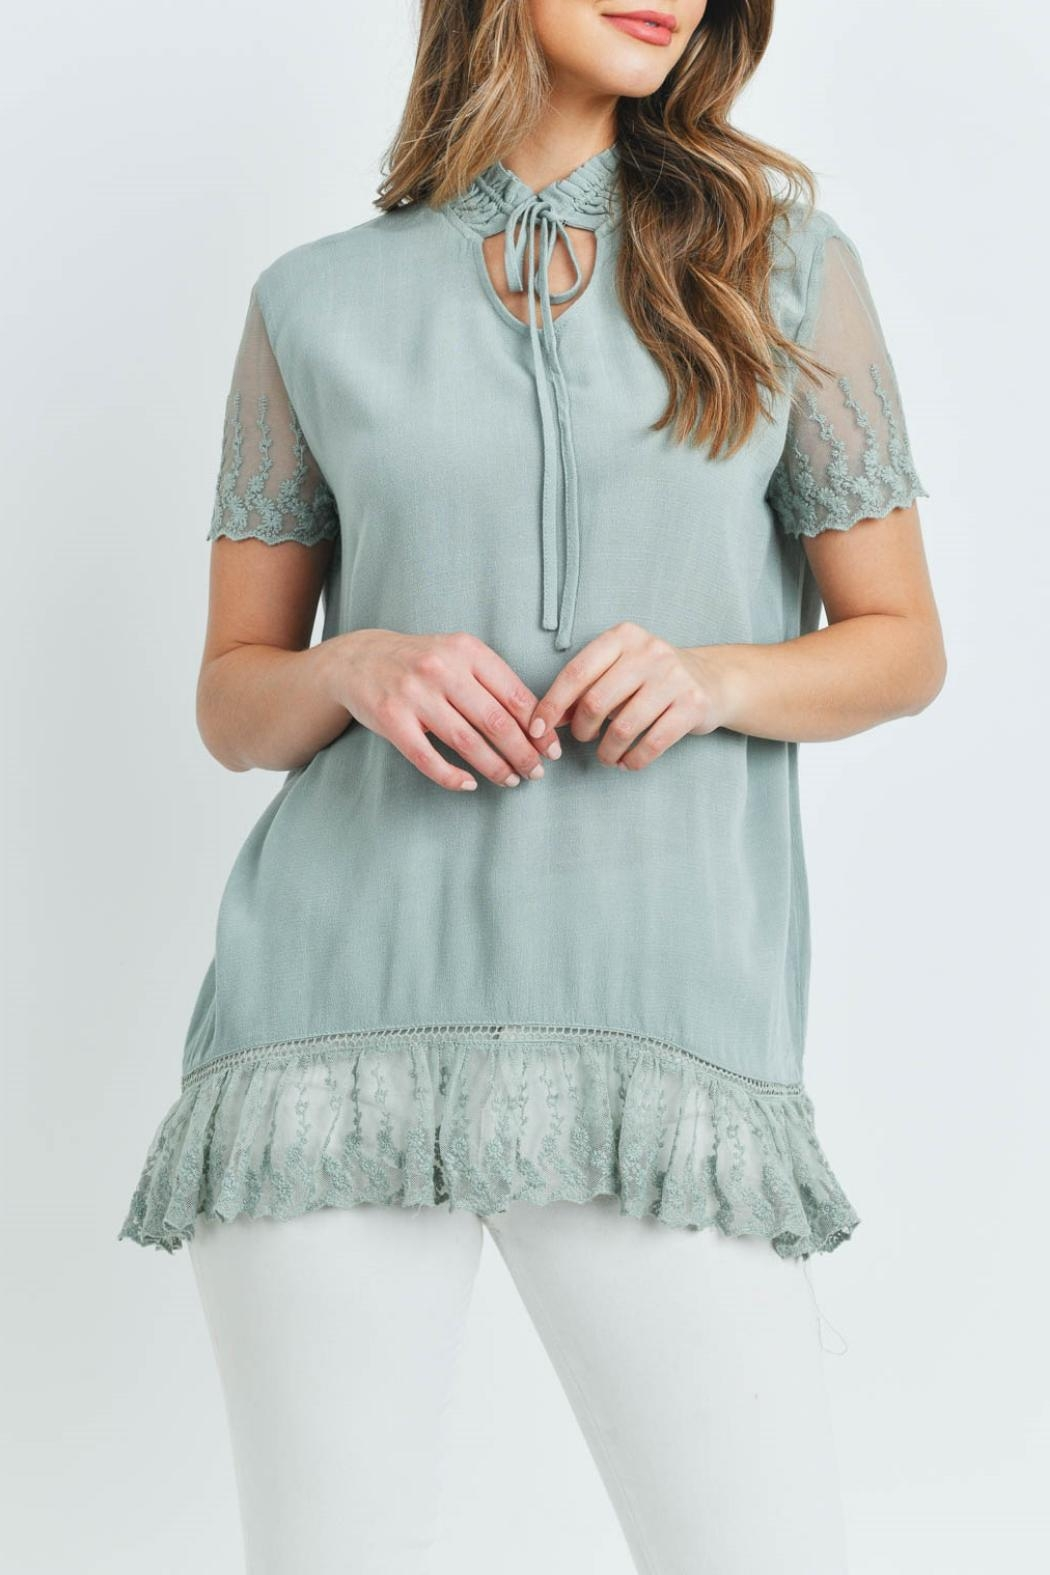 L Love Sage Lace Top - Front Full Image